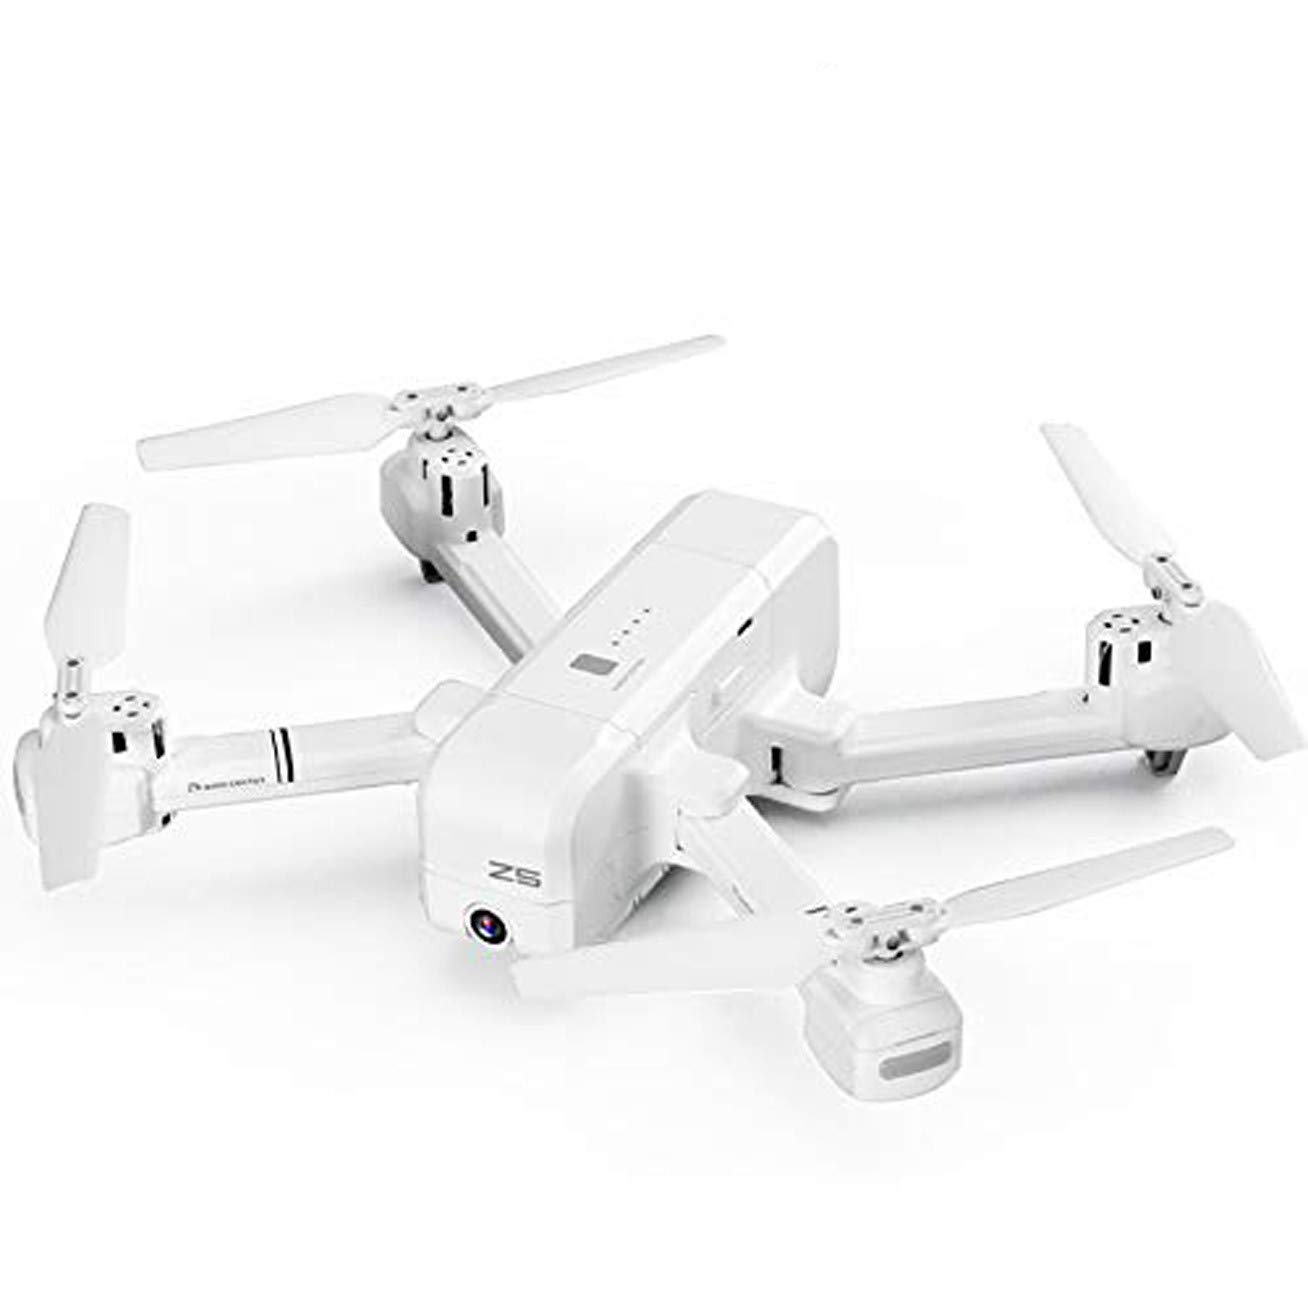 MOZATE SJRC Z5 Quadrocopter with HD 720P Camera GPS Drone 2.4G WiFi FPV Altitude Hold Follow Me (White) by MOZATE (Image #3)